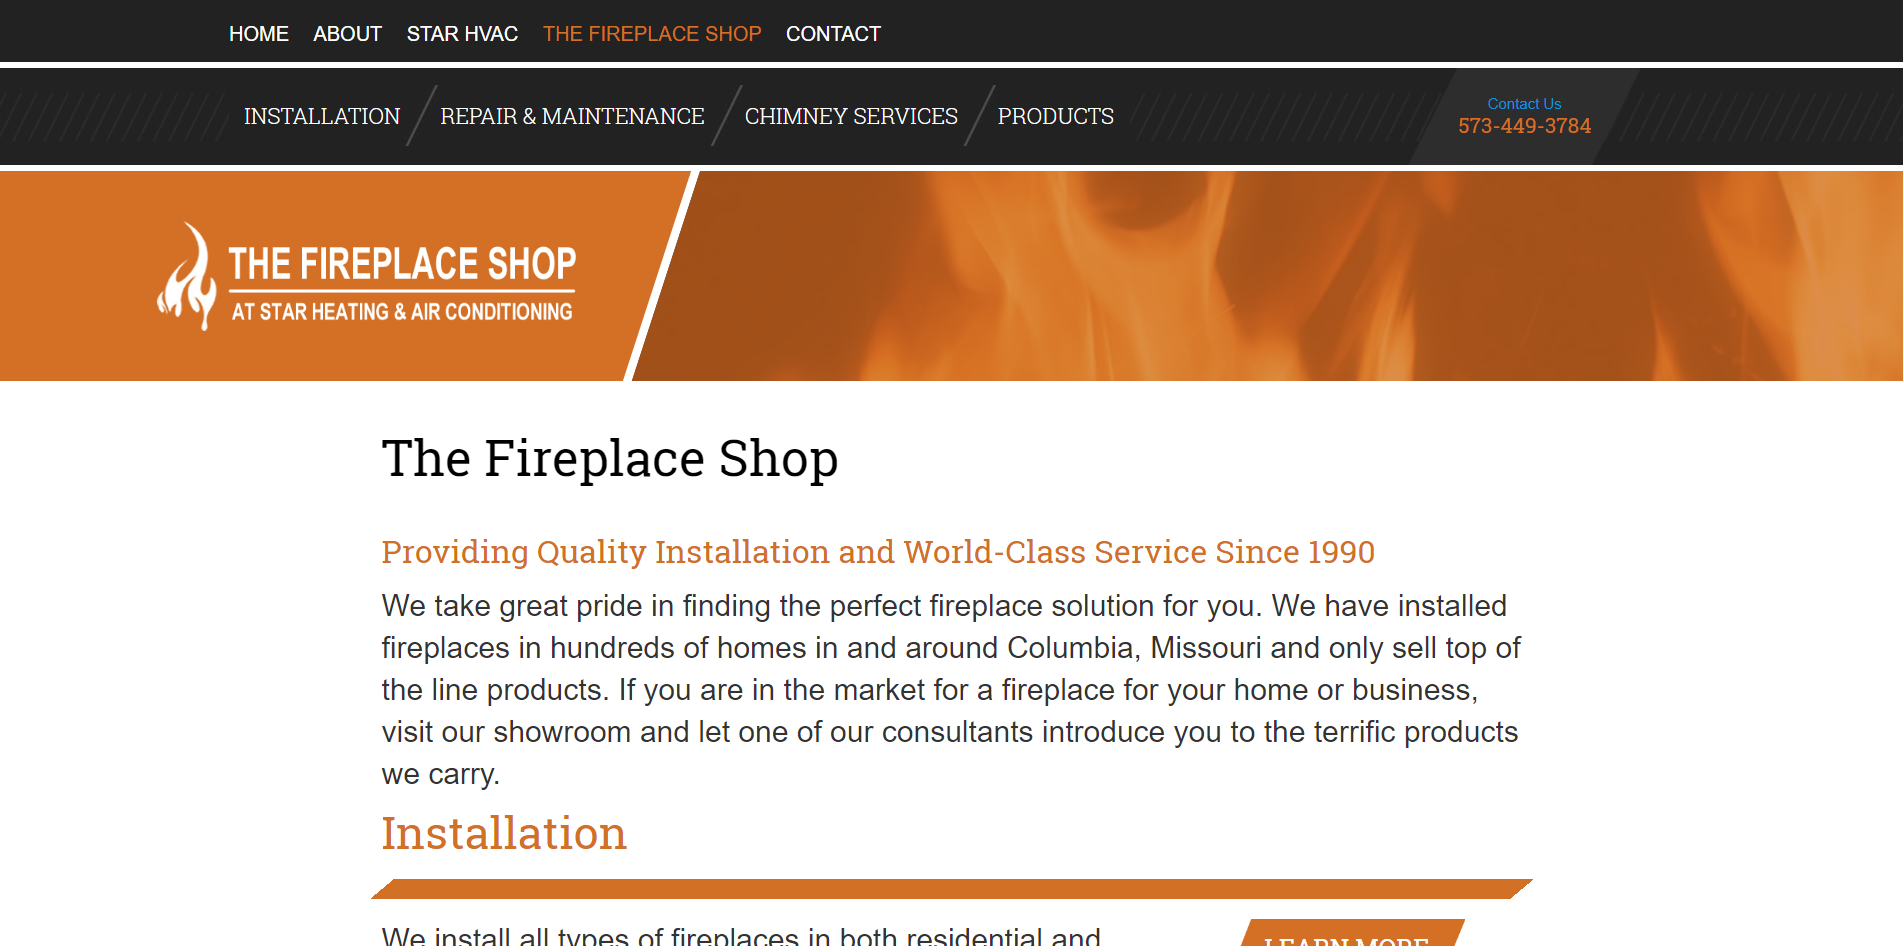 Star Heating and Air Conditioning's New Website: The Fireplace Shop Page